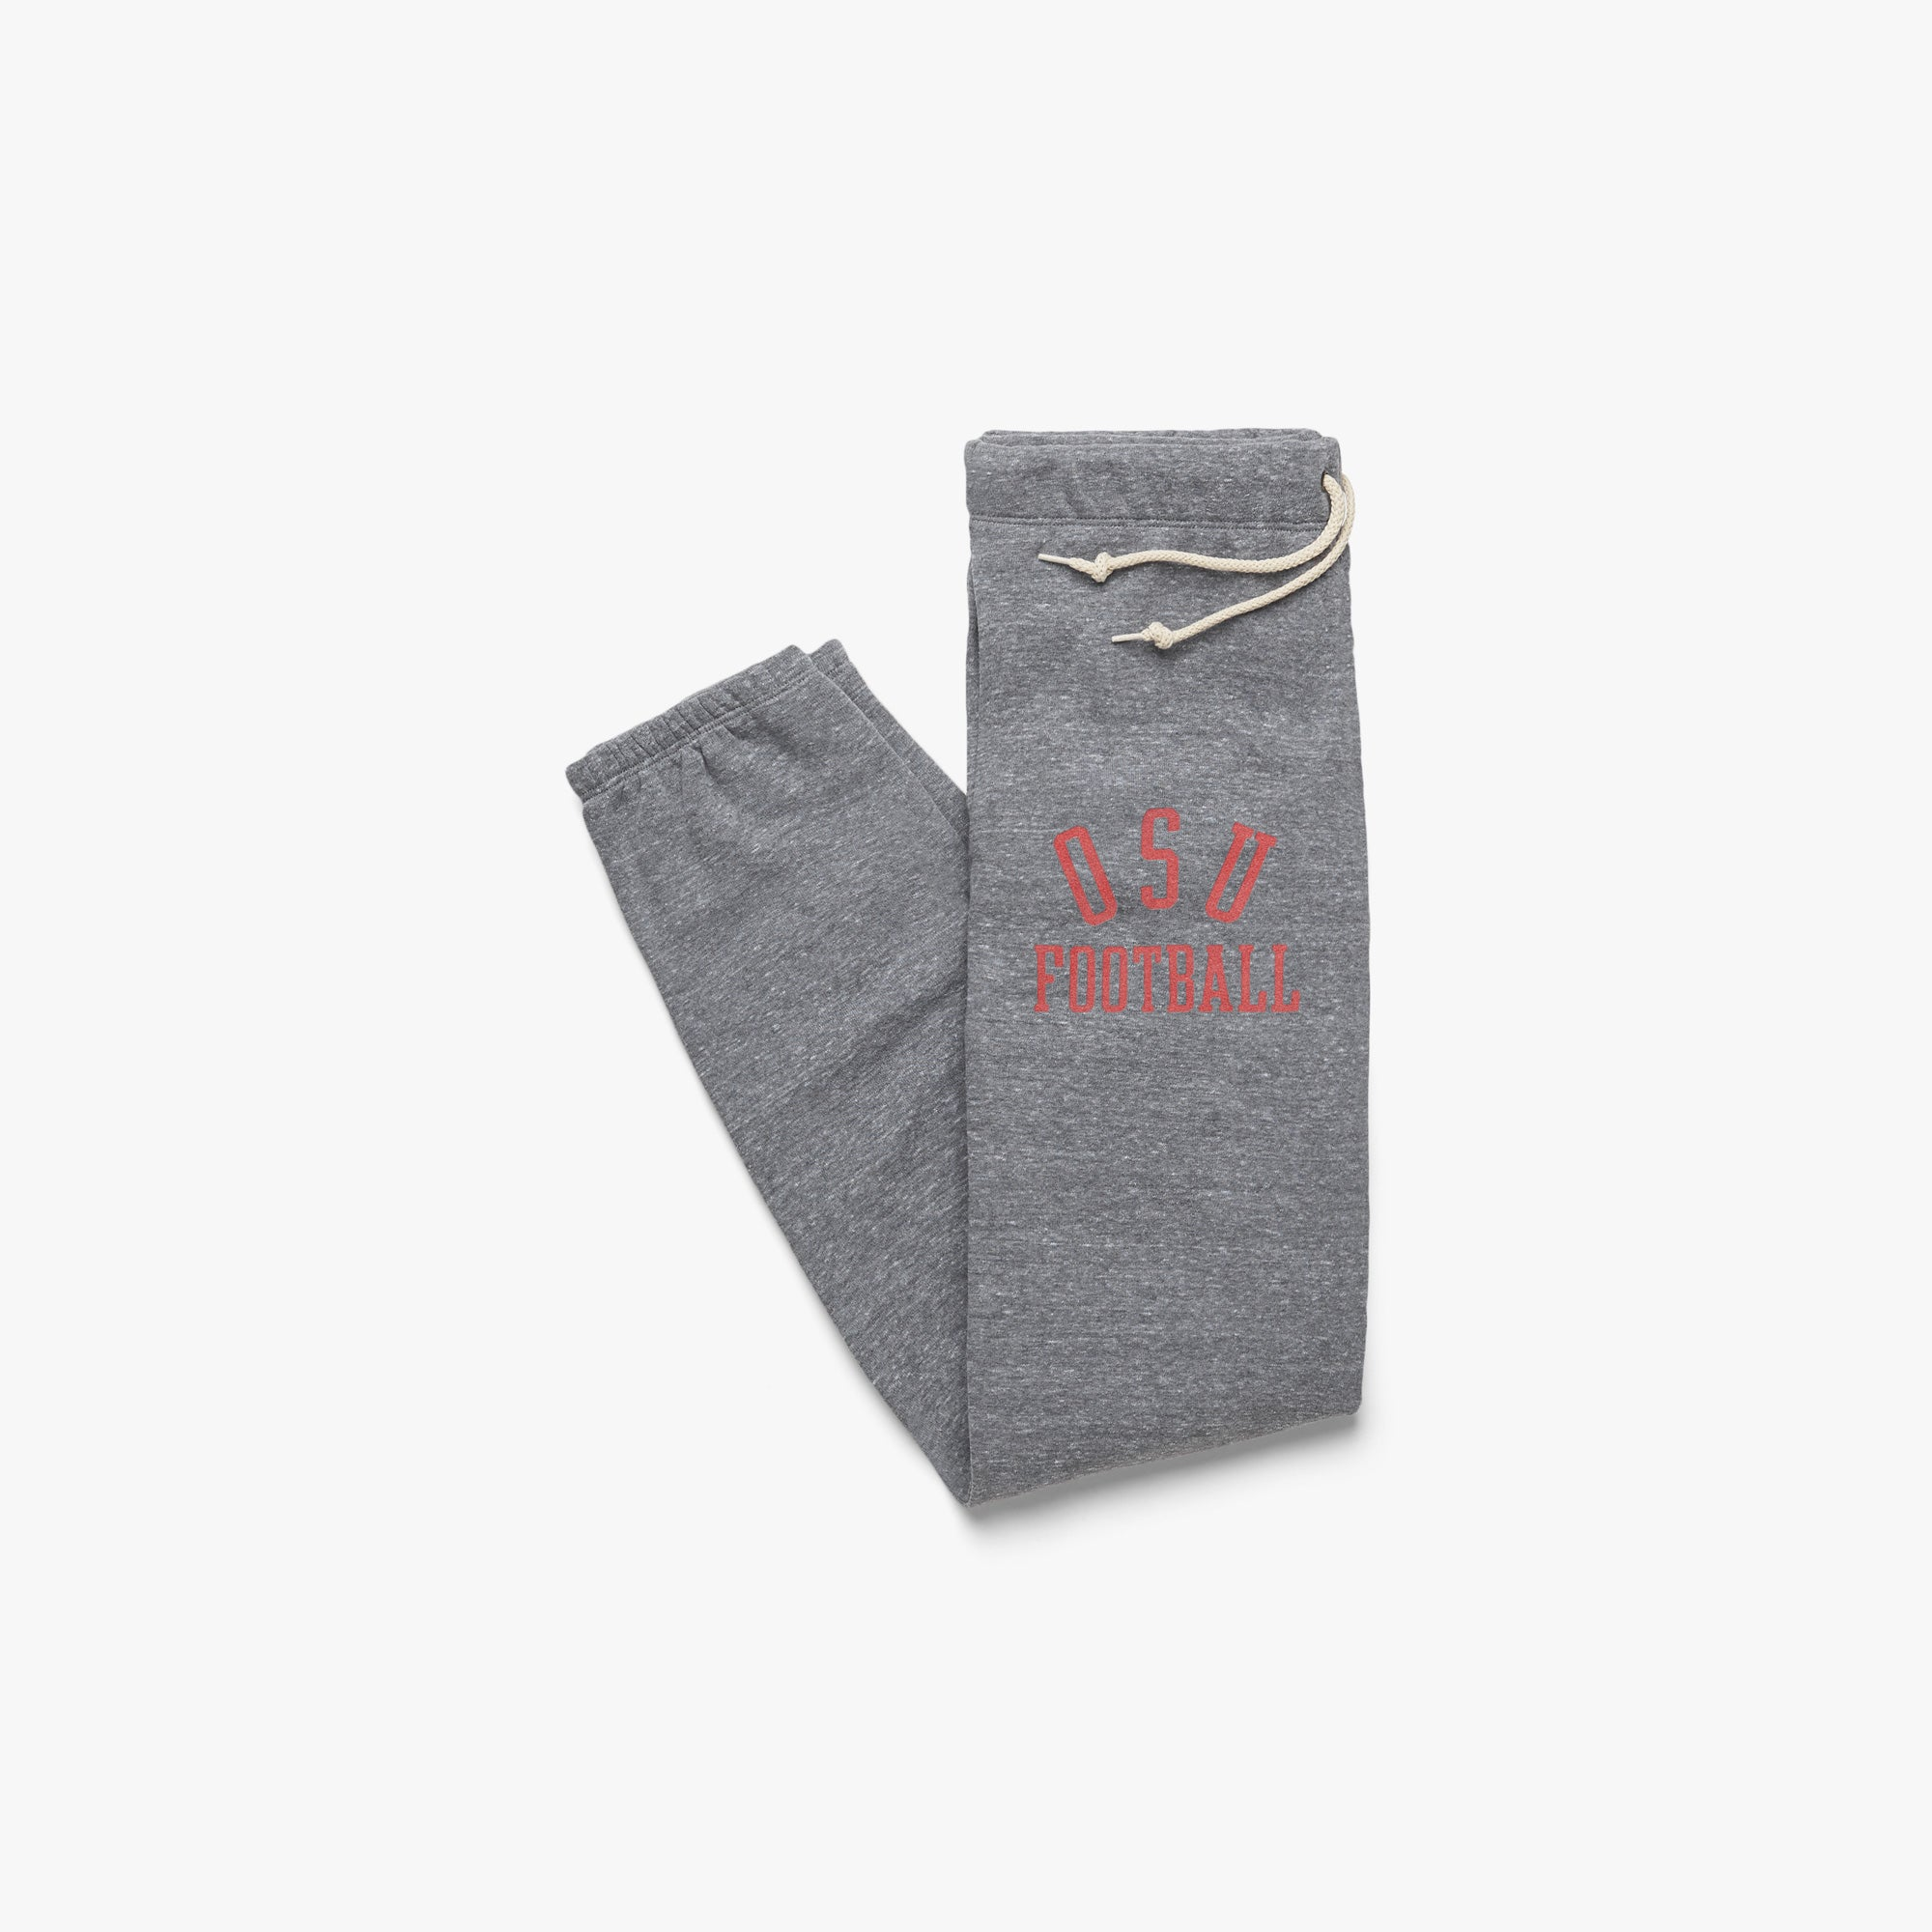 OSU Football Sweatpants